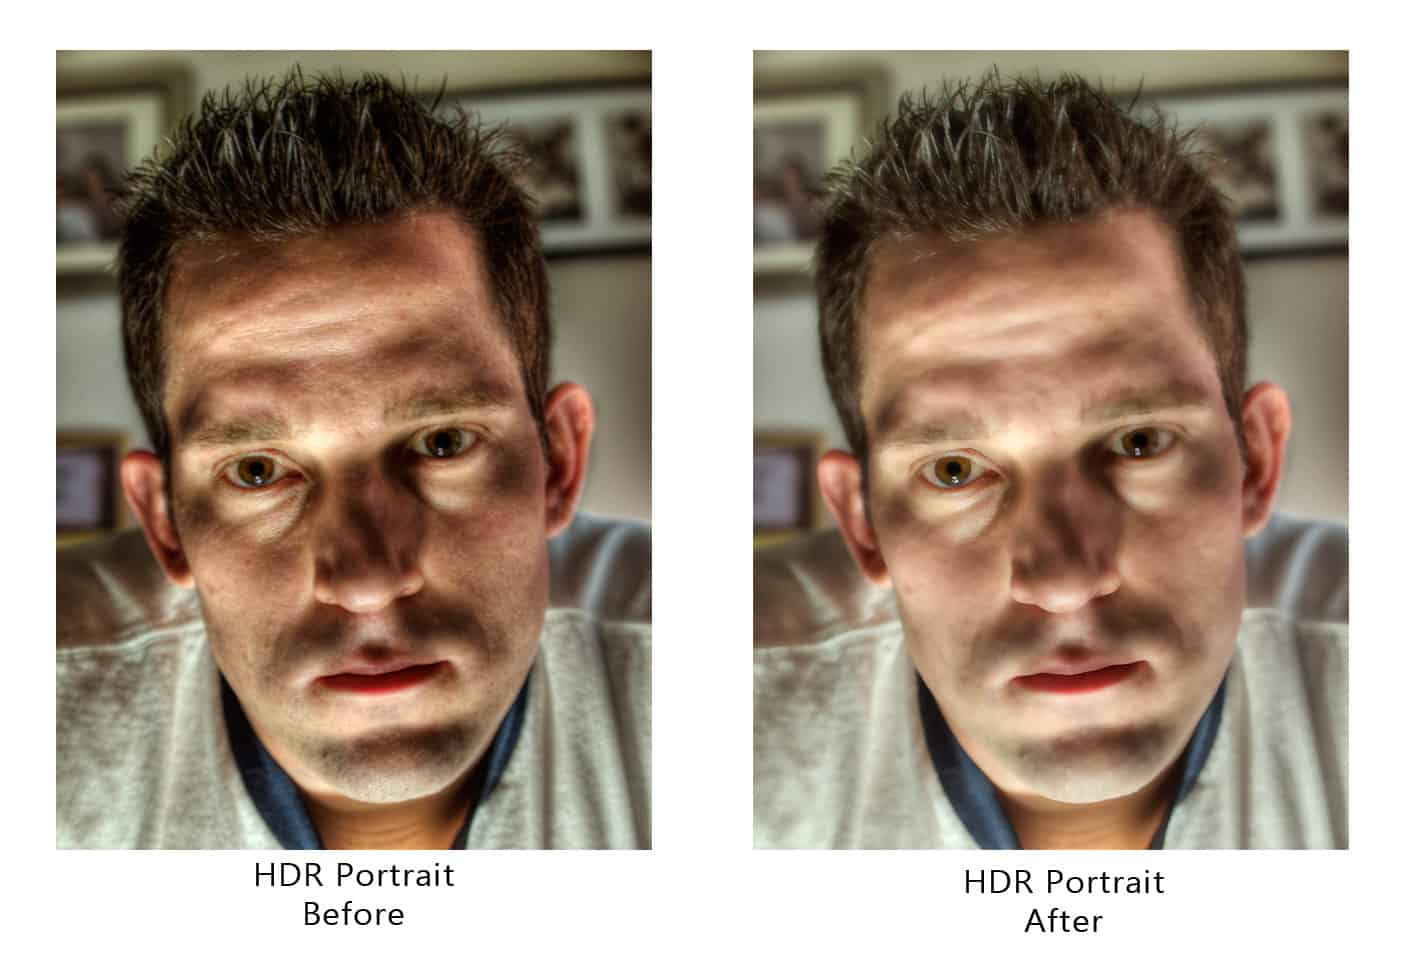 Portraits and HDR